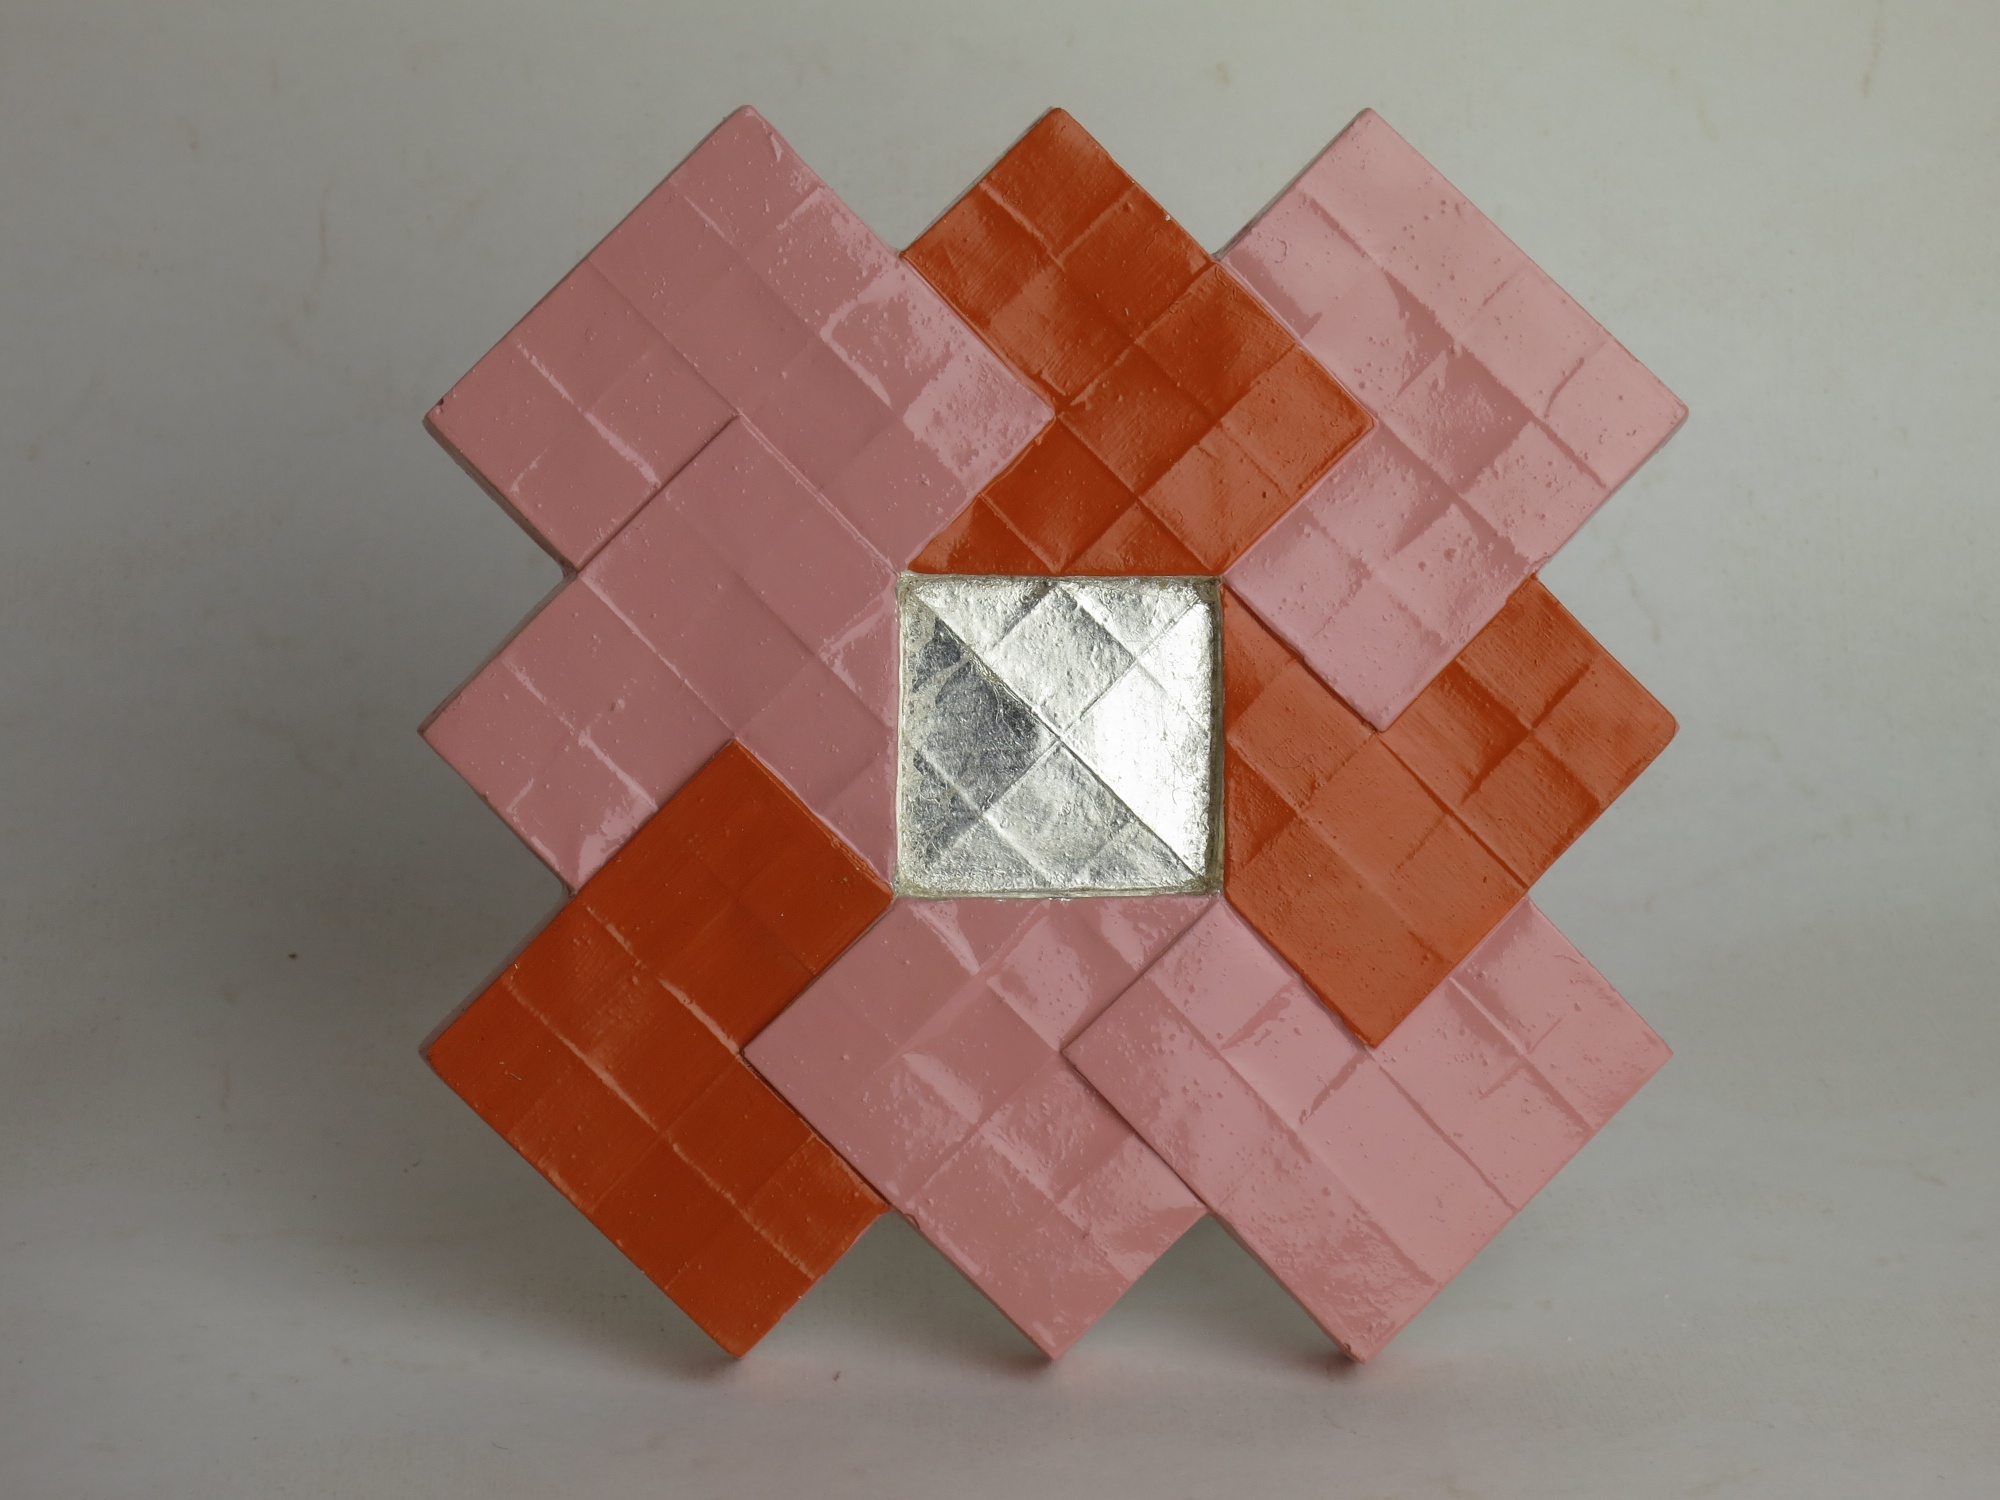 Painted plaster tile with white gold center.